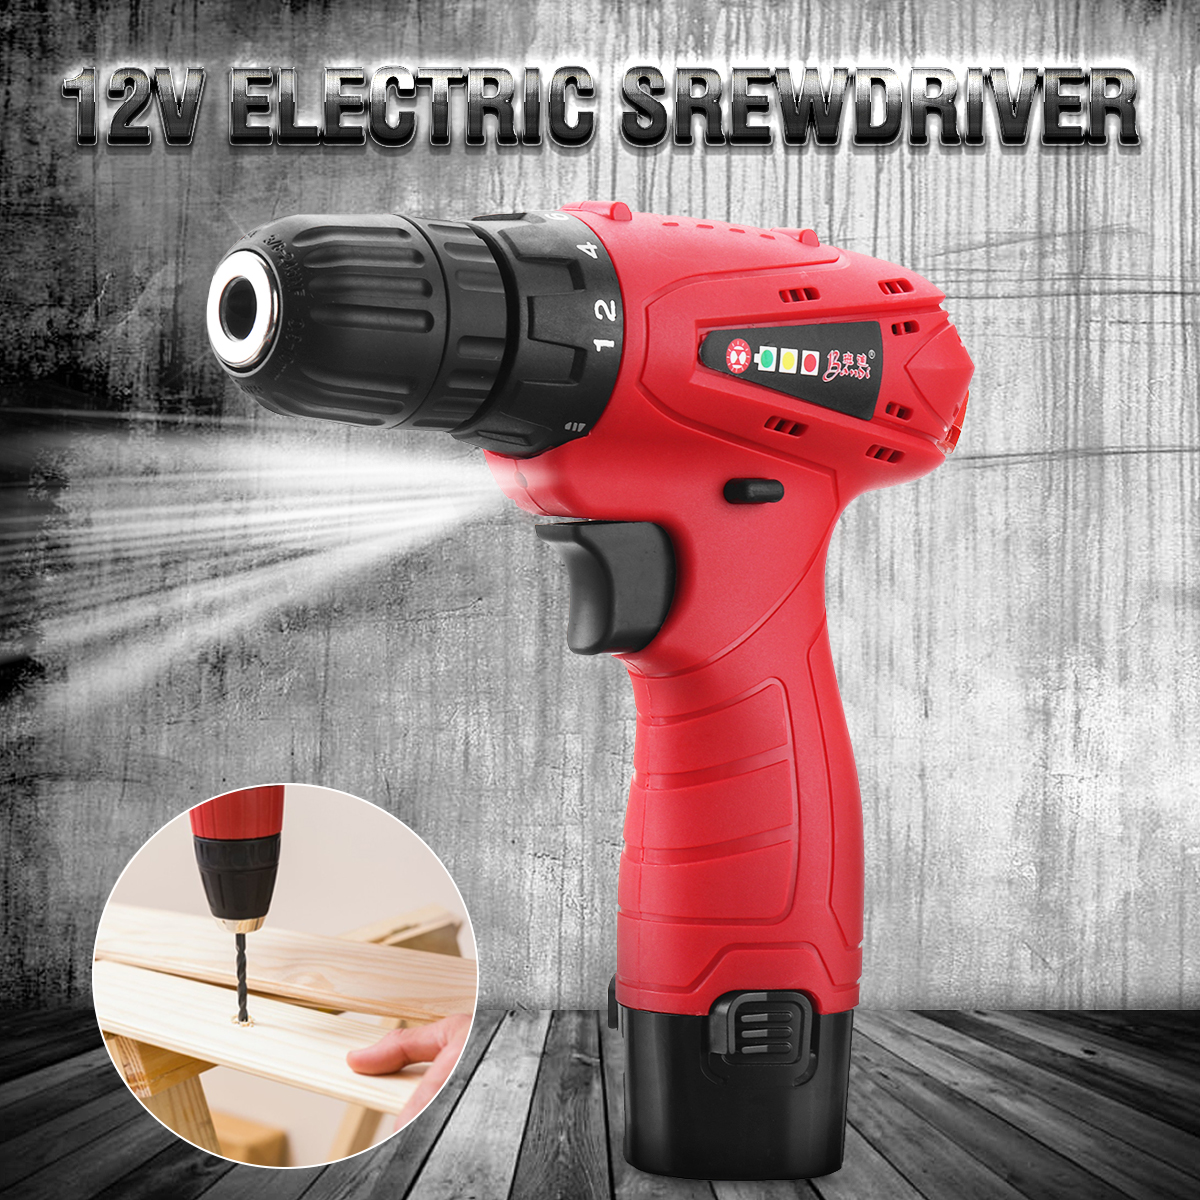 DC12V Cordless Electric Screwdriver Power Screw Driver Drill Tools 1 Battery 1 Charger EU Plug